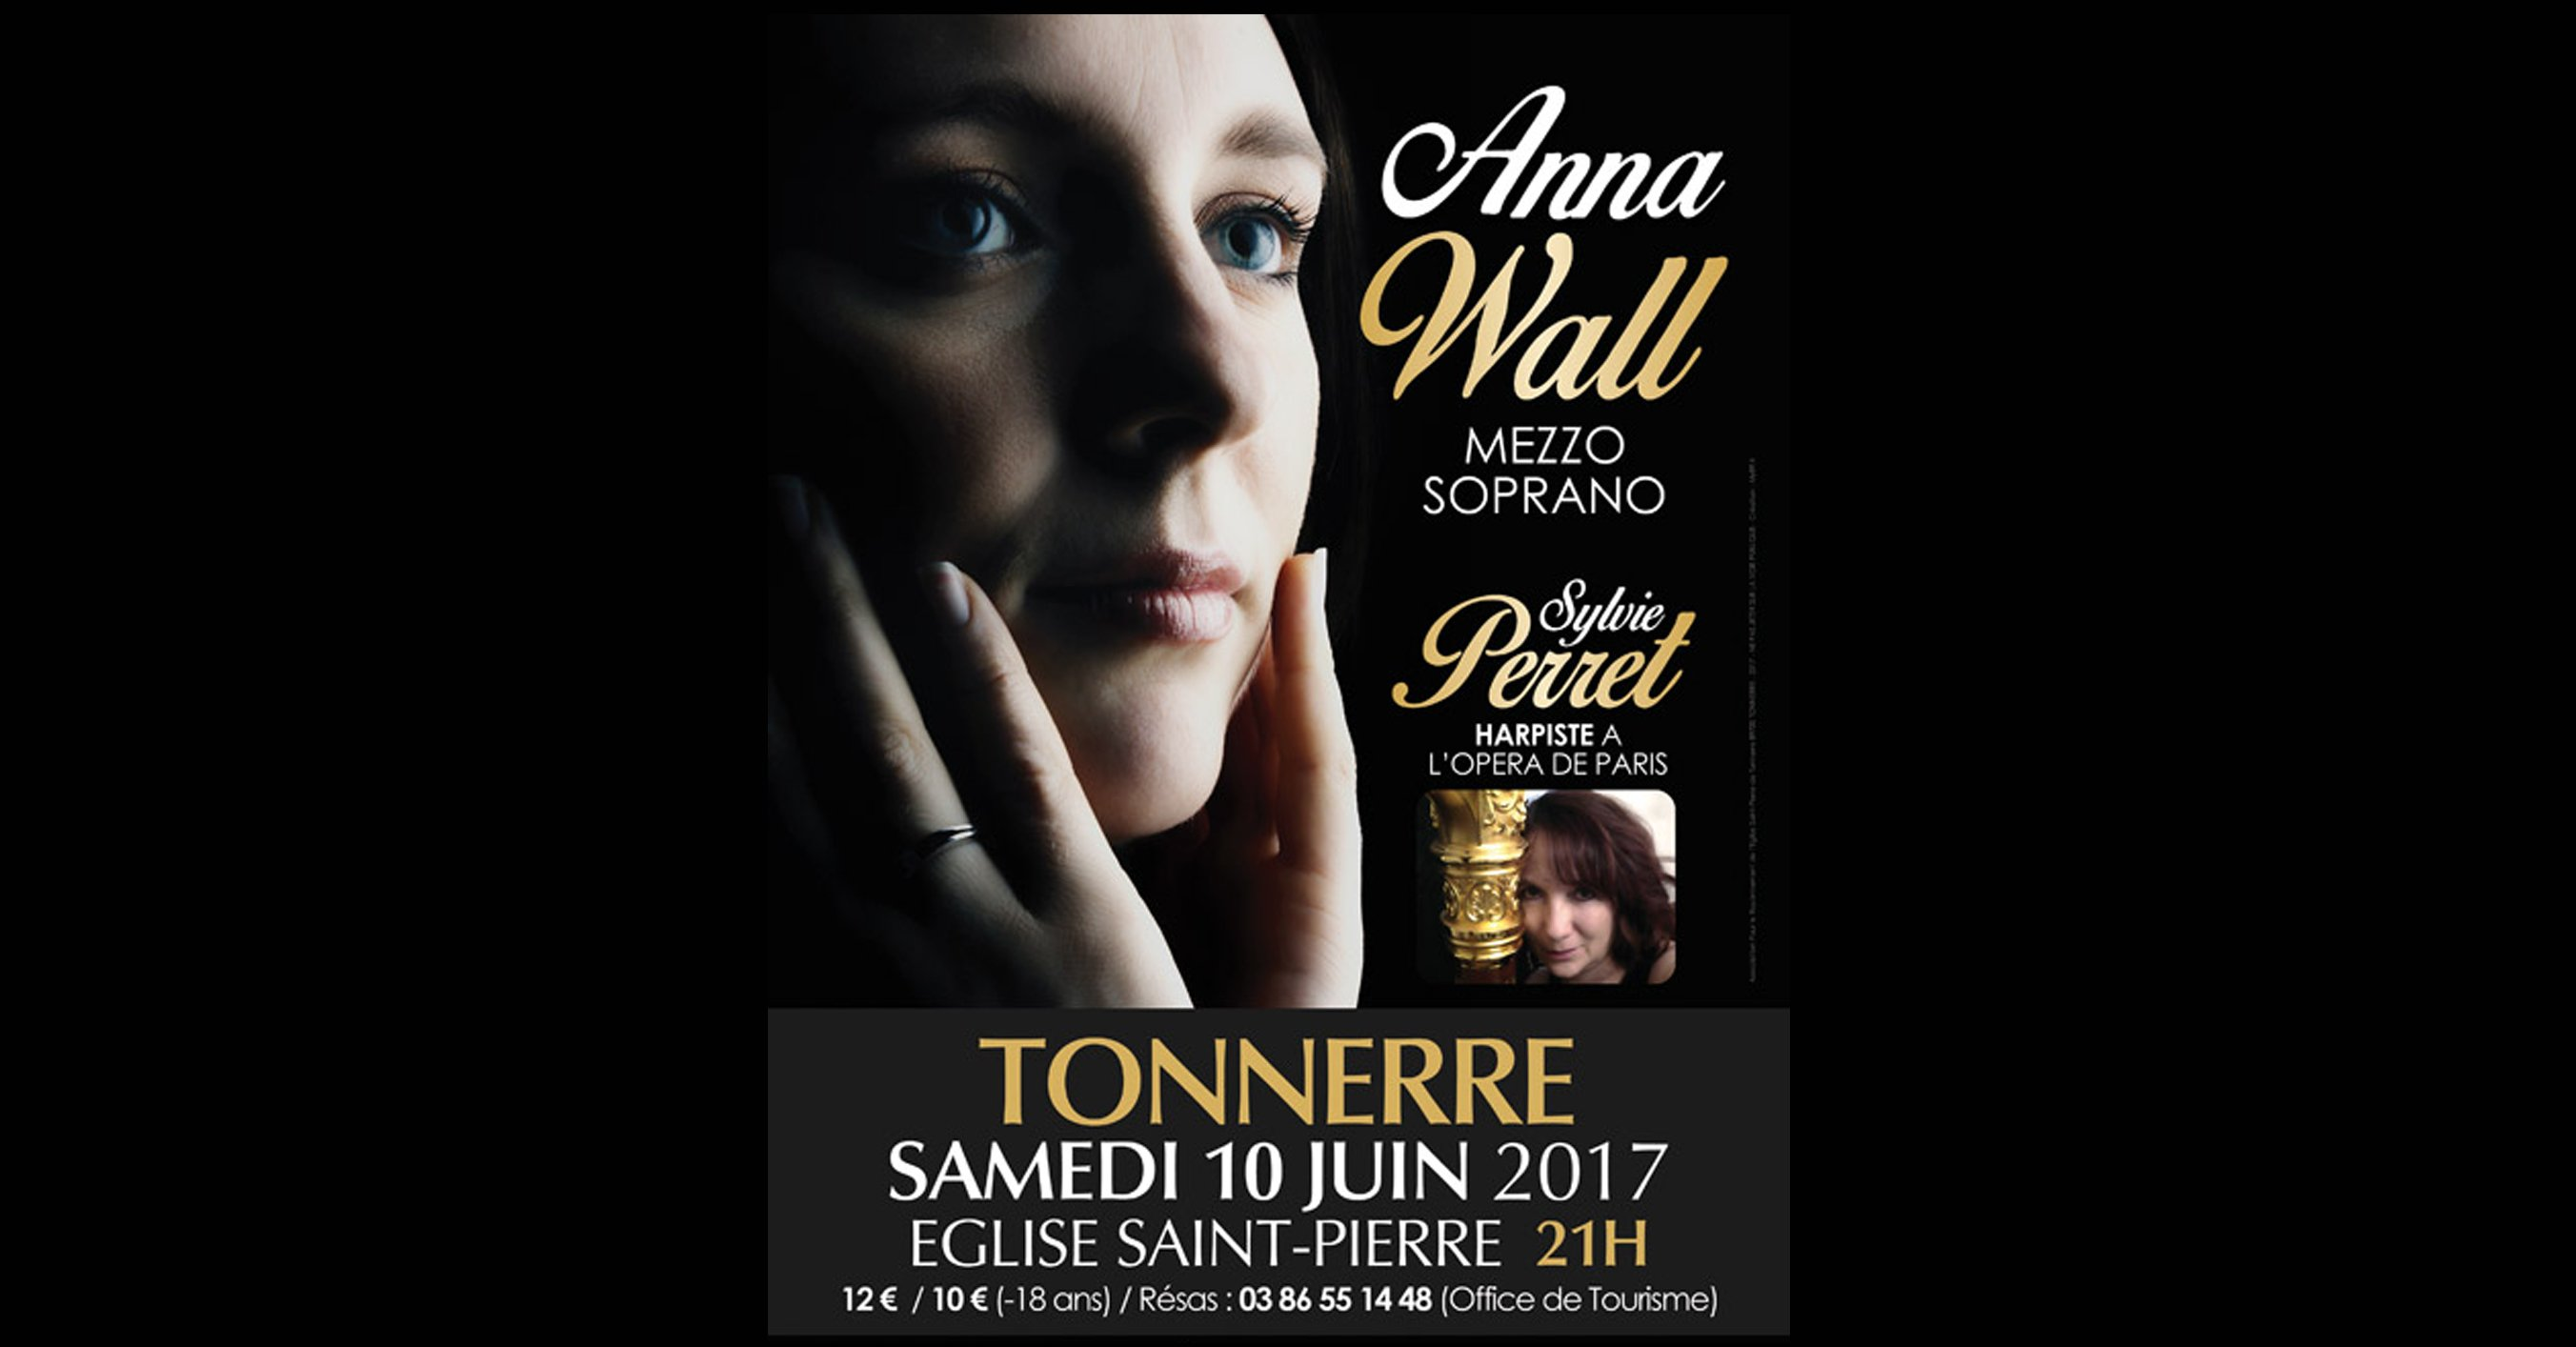 Concert Anna Wall, Sylvie Perret.